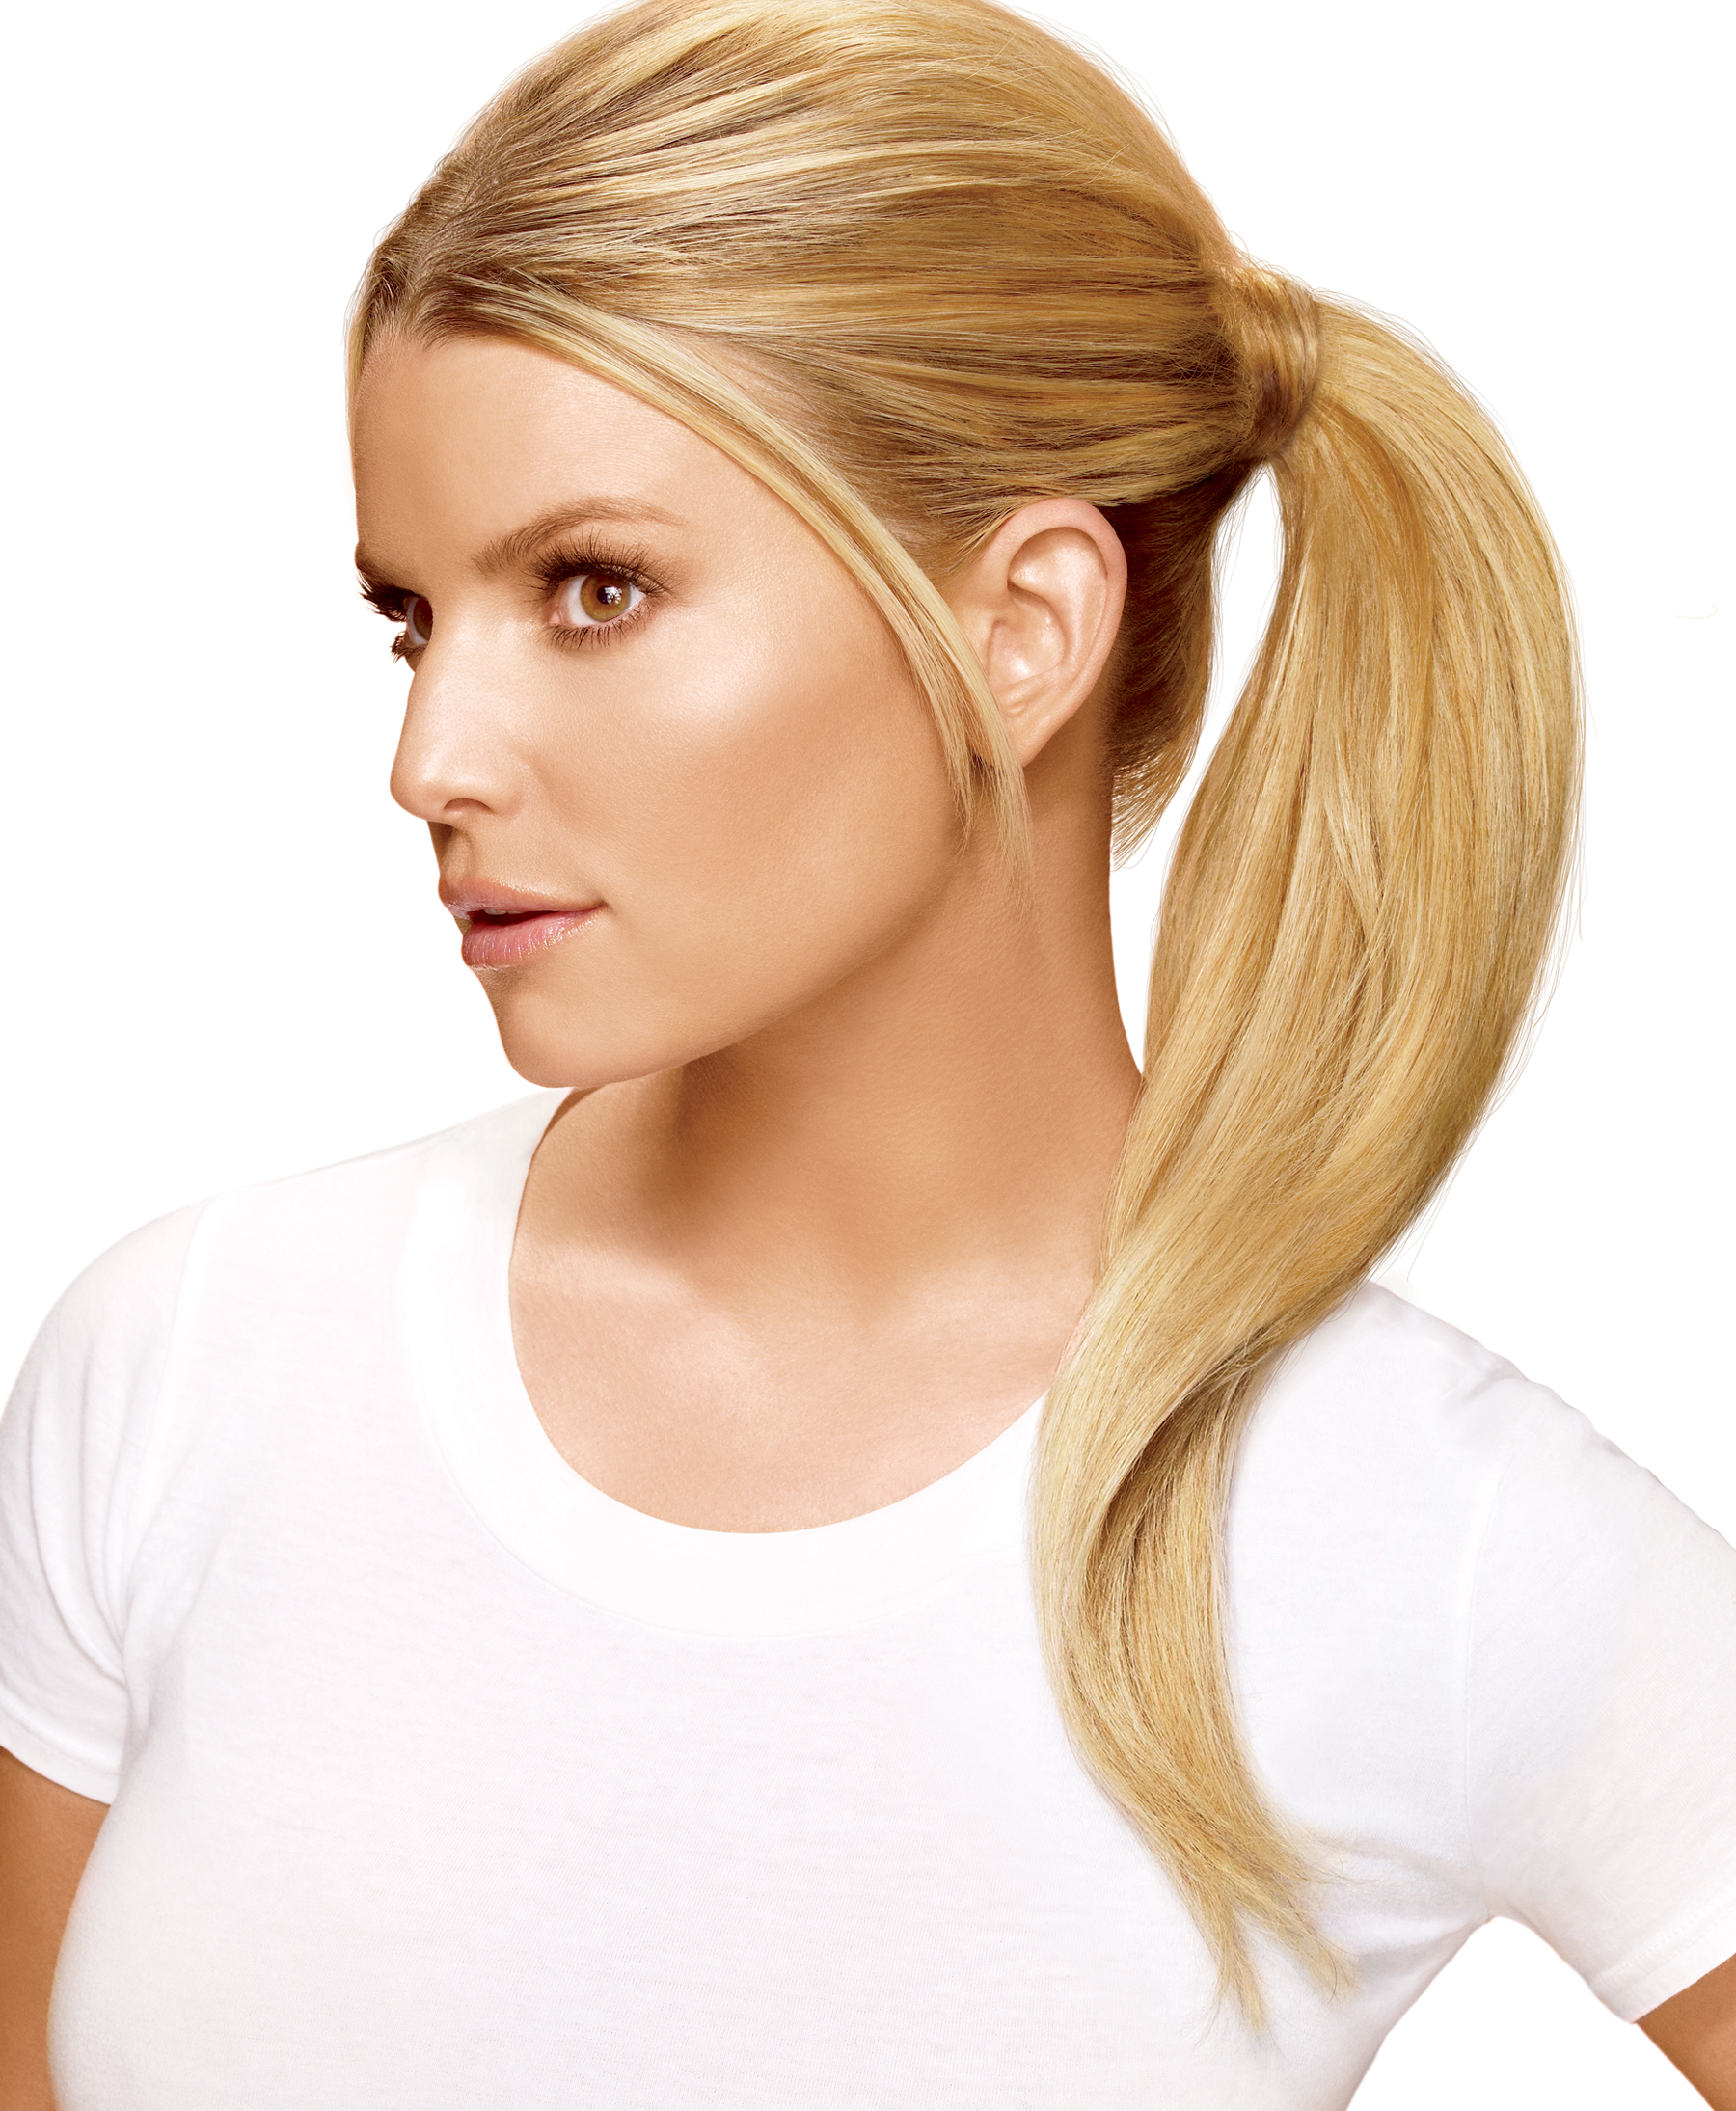 Hair Extensions Ponytail Jessica Simpson 29